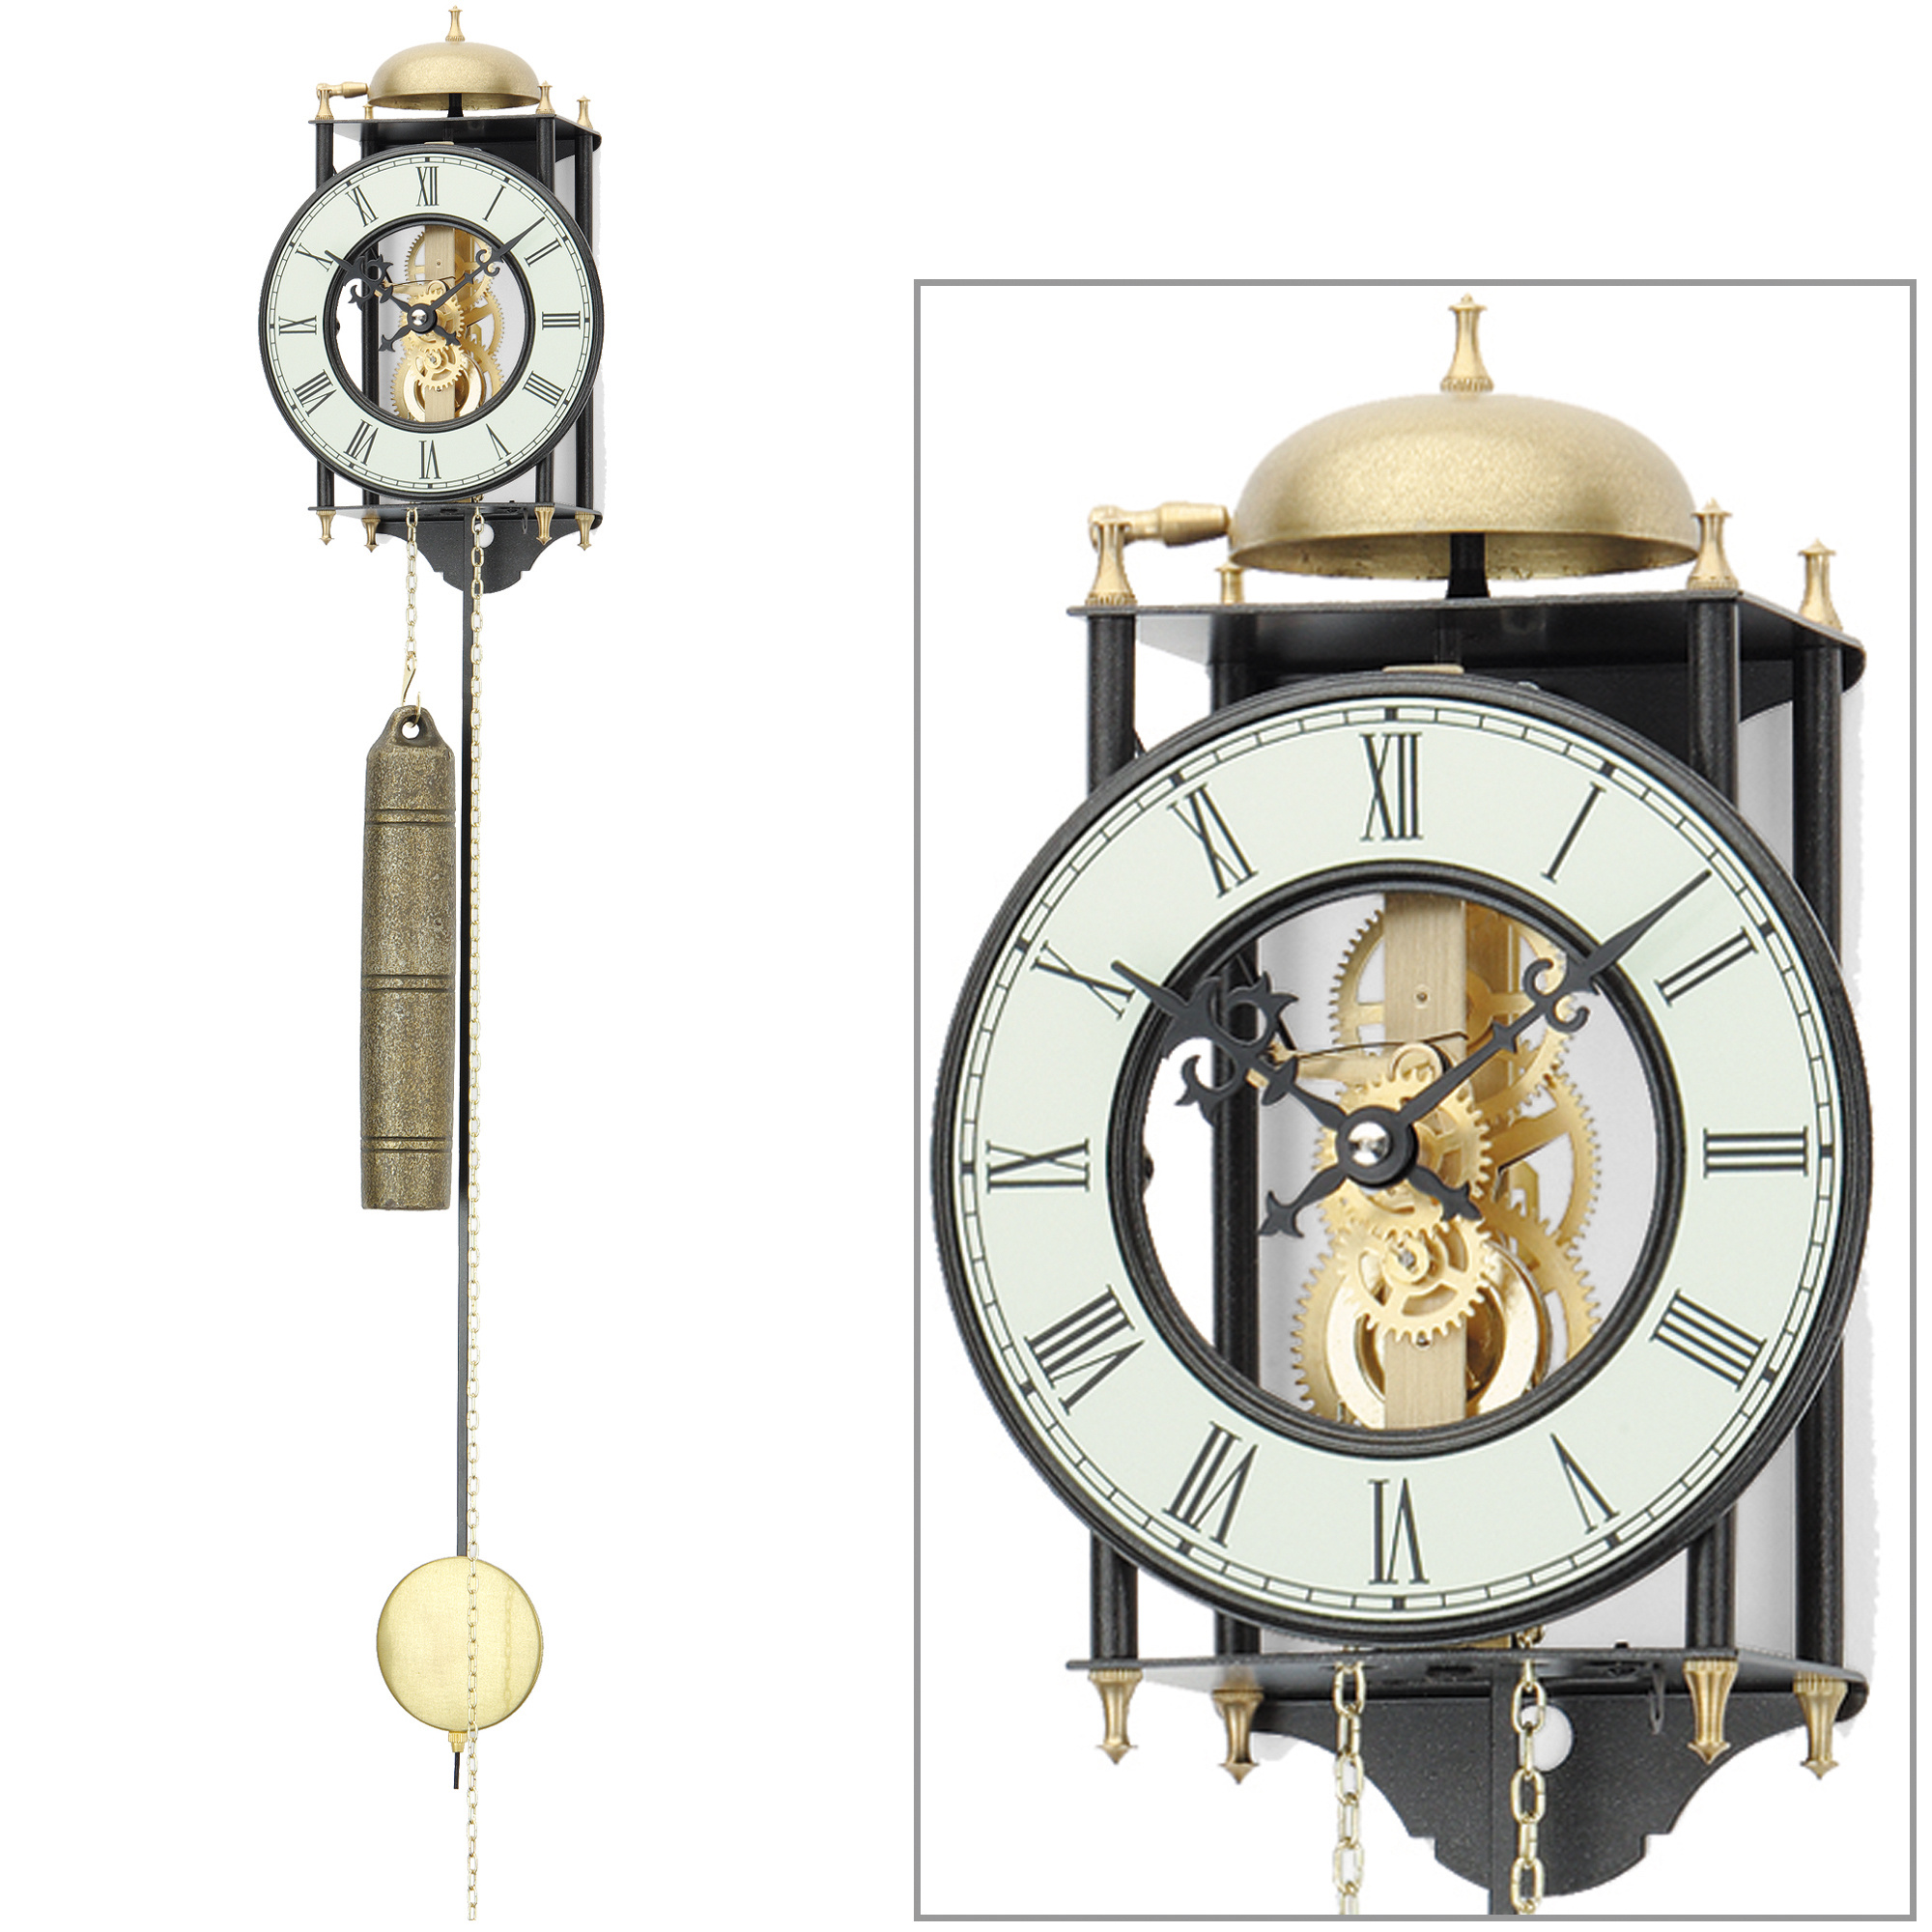 ams 302 wanduhr mit pendel mechanisch golden schwarz metall pendeluhr skelettuhr ebay. Black Bedroom Furniture Sets. Home Design Ideas